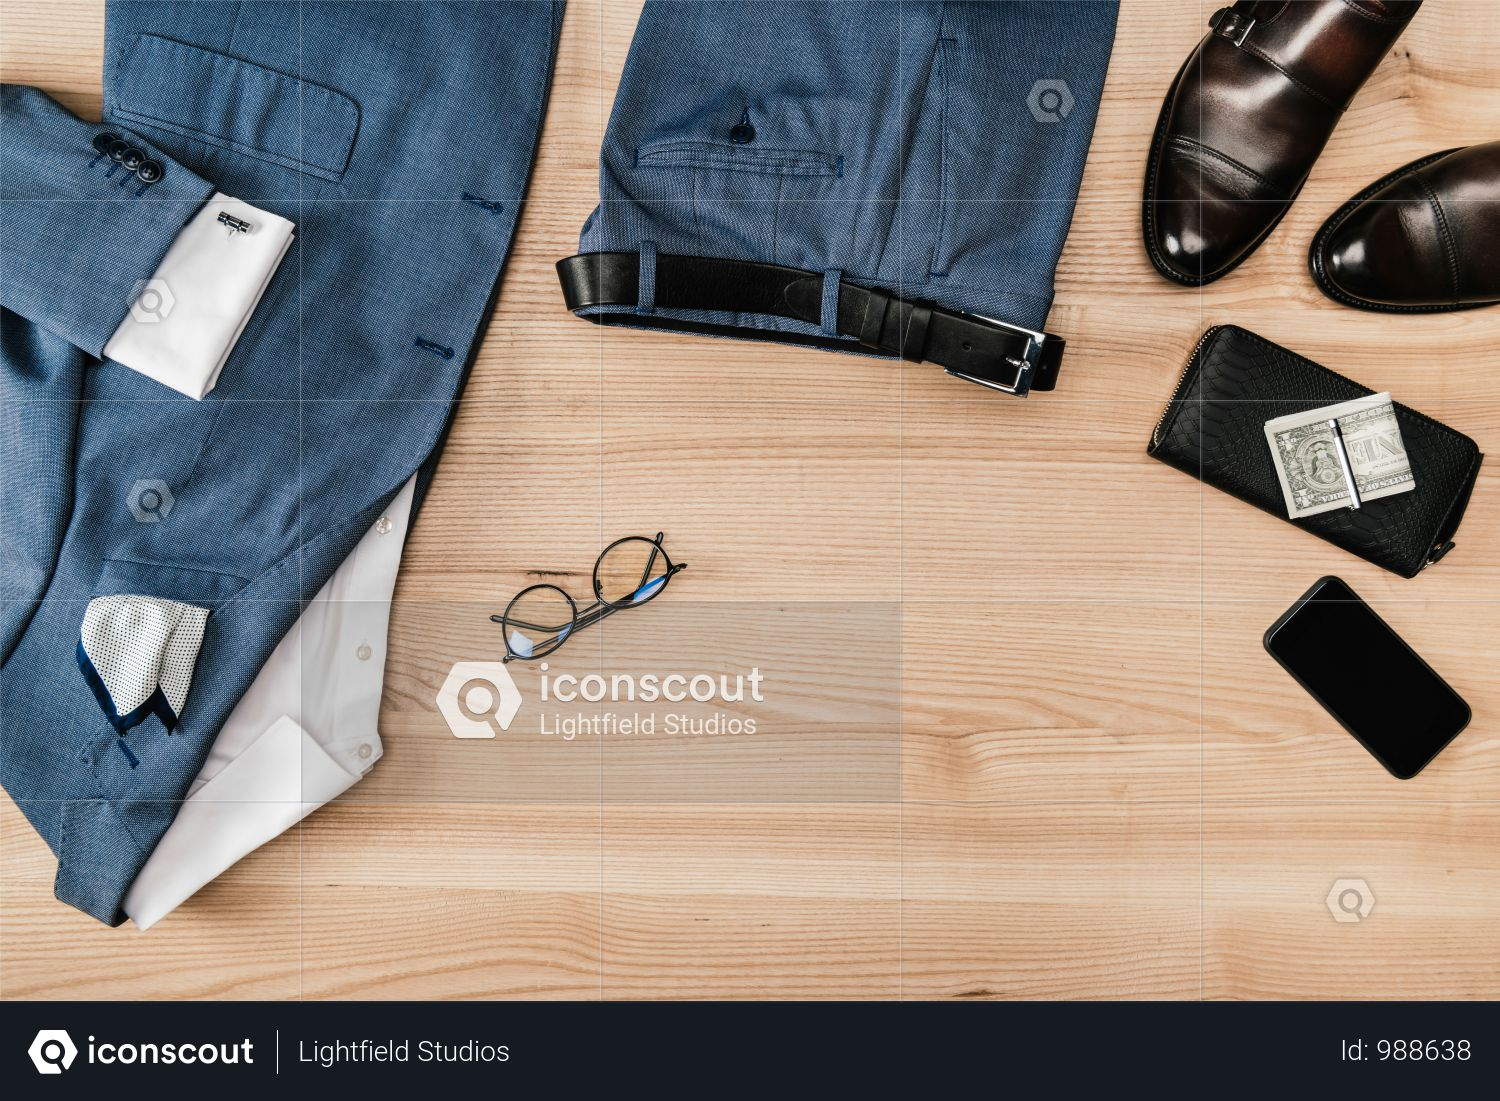 Top View Of Suit And Accessories With Smartphone On Wooden Tabletop Photo